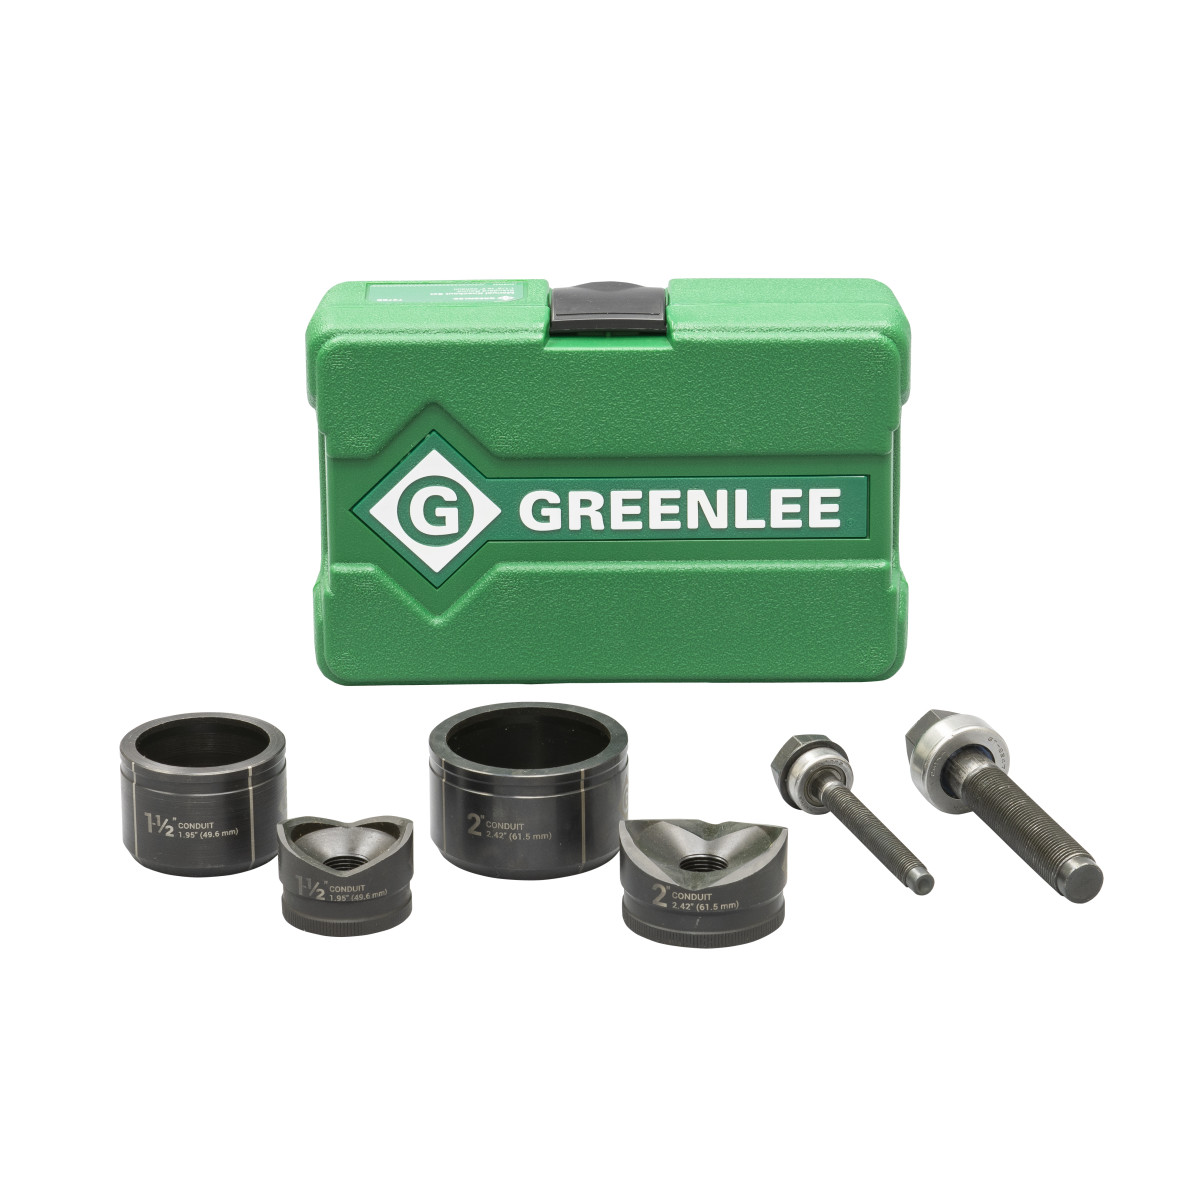 "Greenlee 737BB Standard Knockout Punch Set 1/2"" - 2"" Conduit Size"